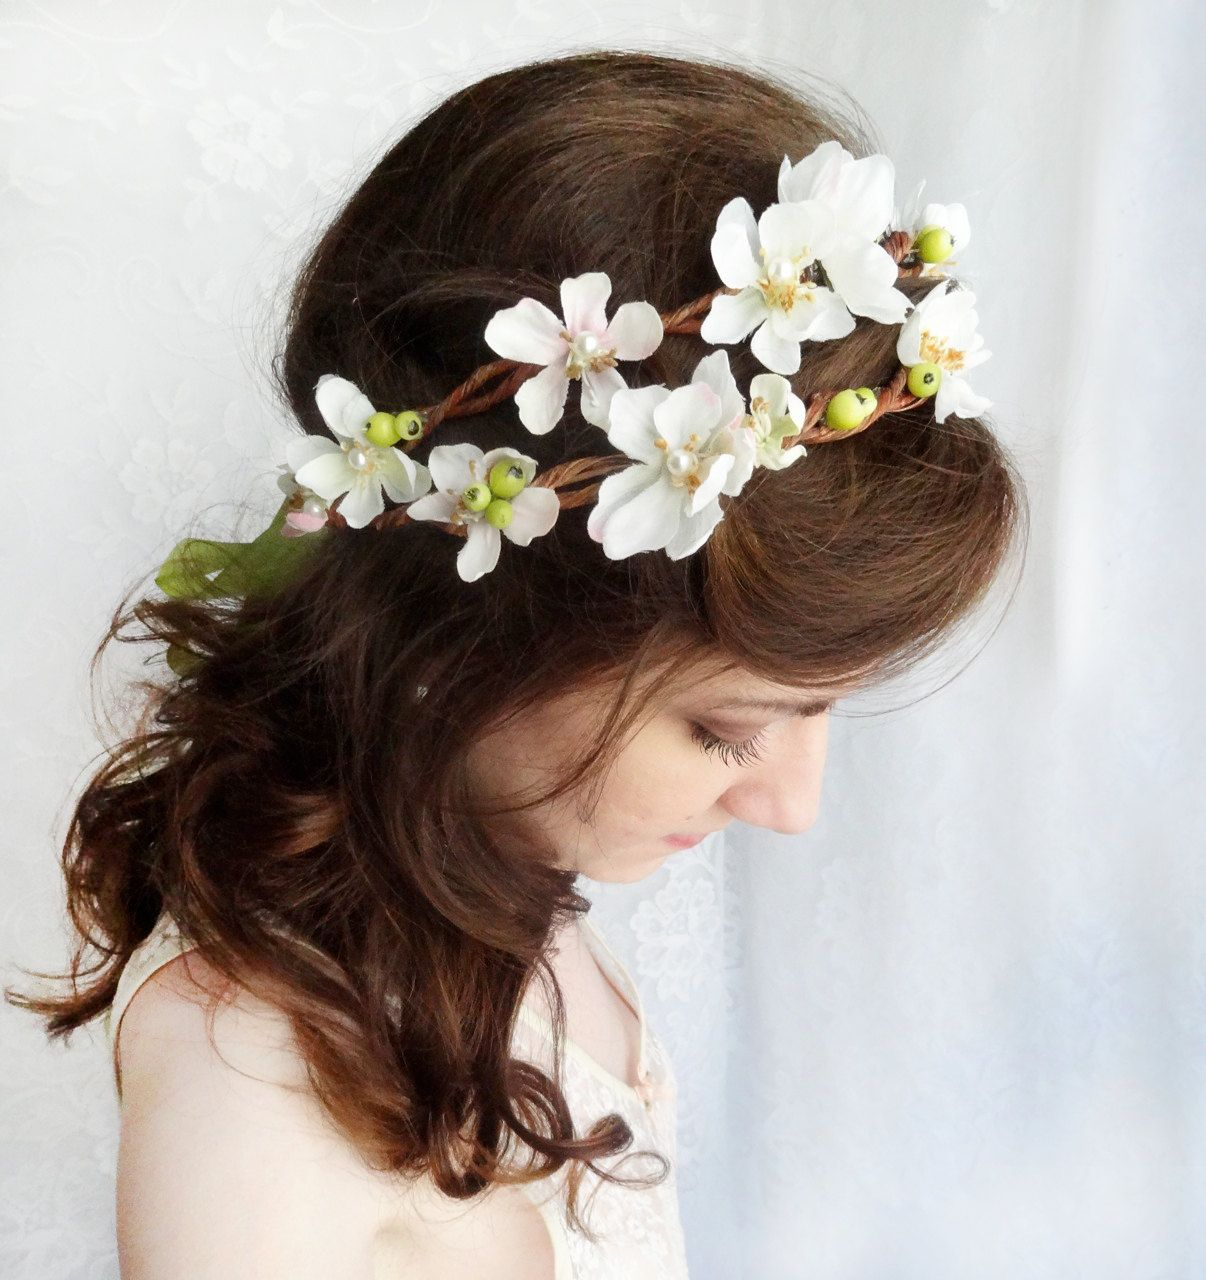 Floral Crown Rustic Wedding Headpiece White Bridal Hair